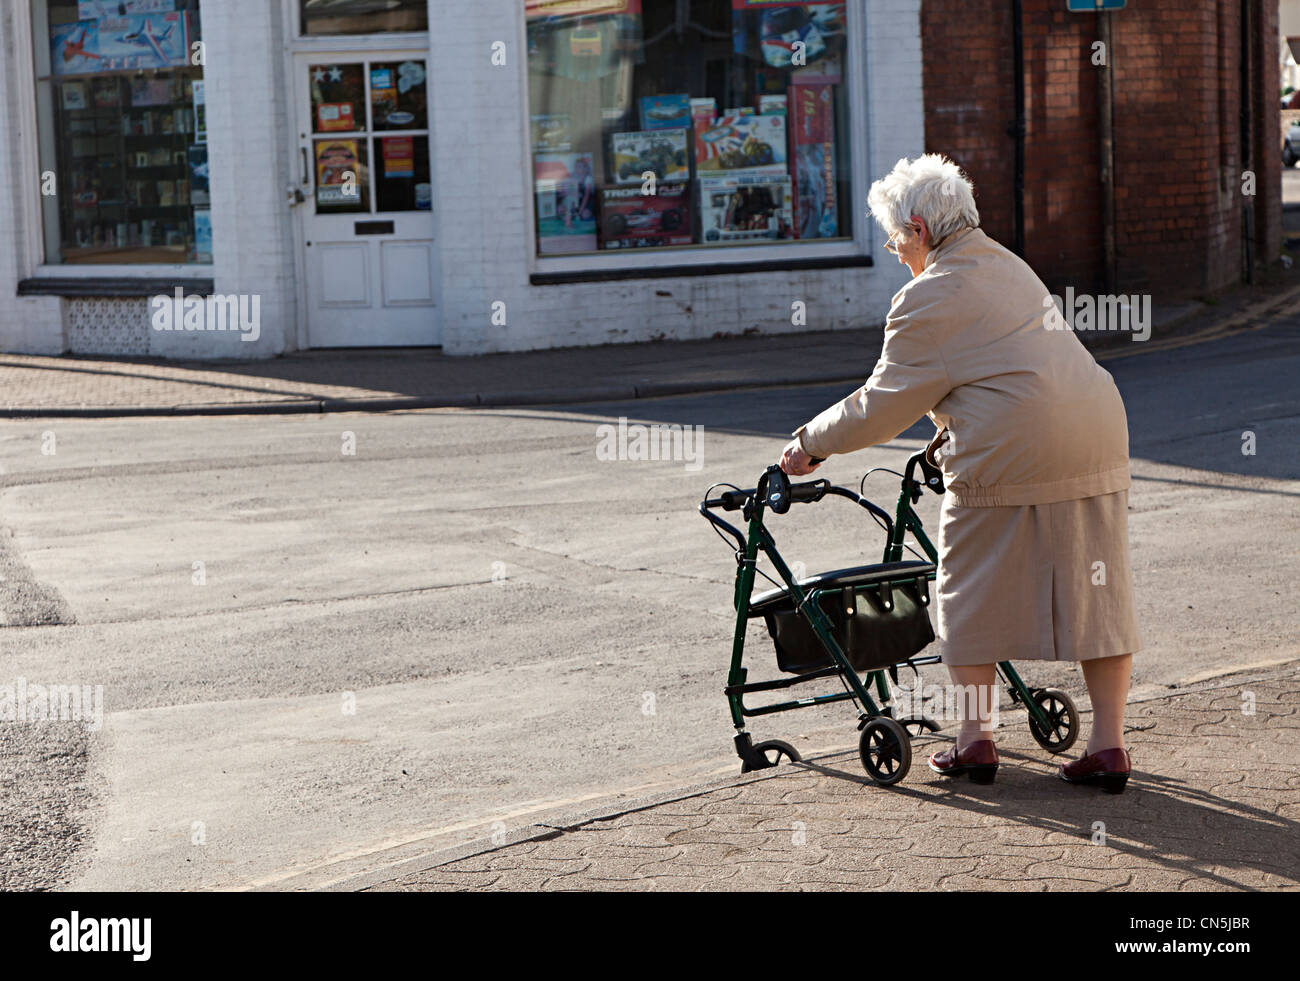 Old woman pushing shopping chair down kerb in street, Abergavenny, Wales, UK - Stock Image